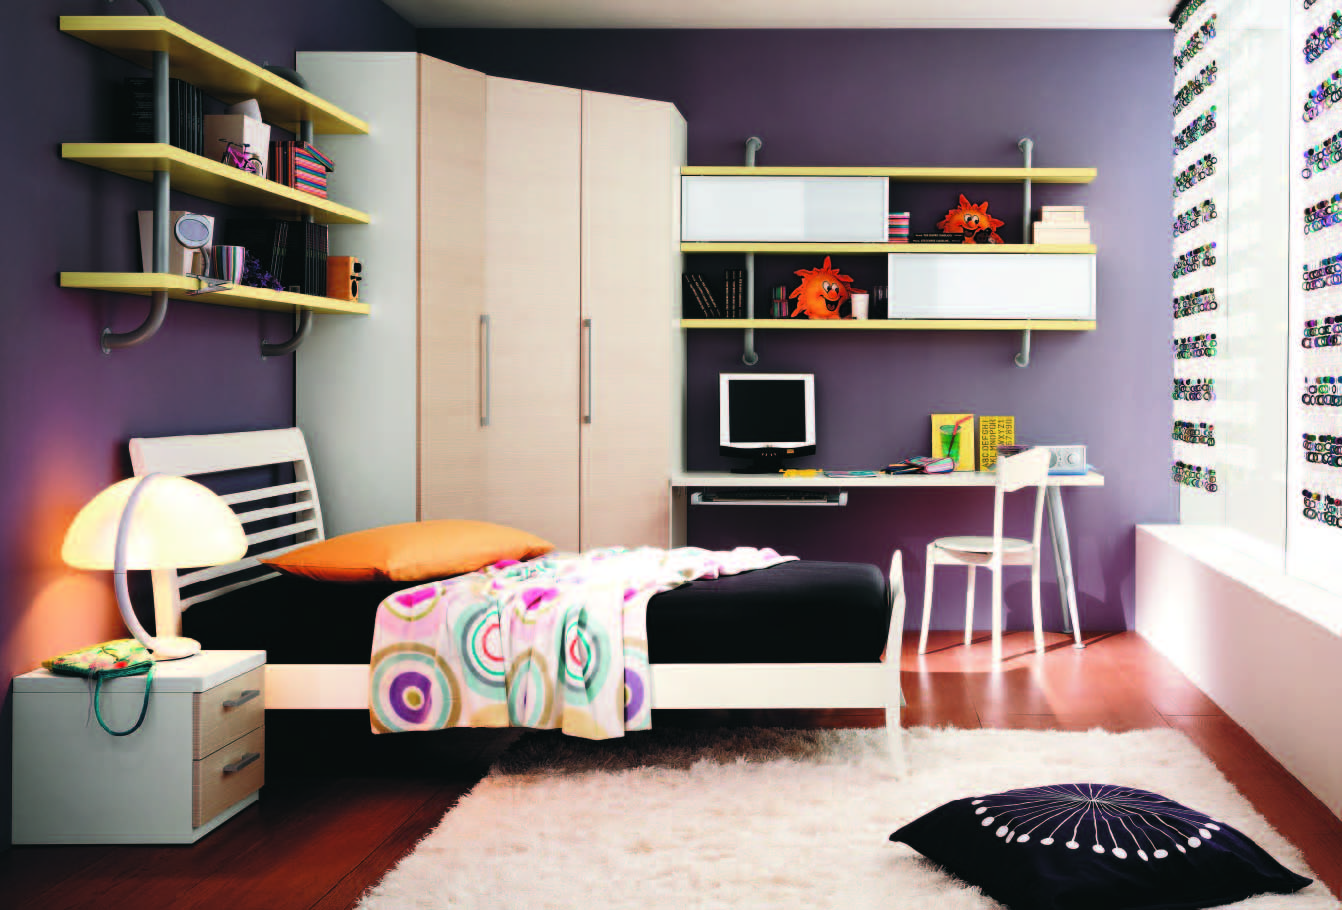 Fabulous modern themed rooms for boys and girls for Bedroom ideas for teens